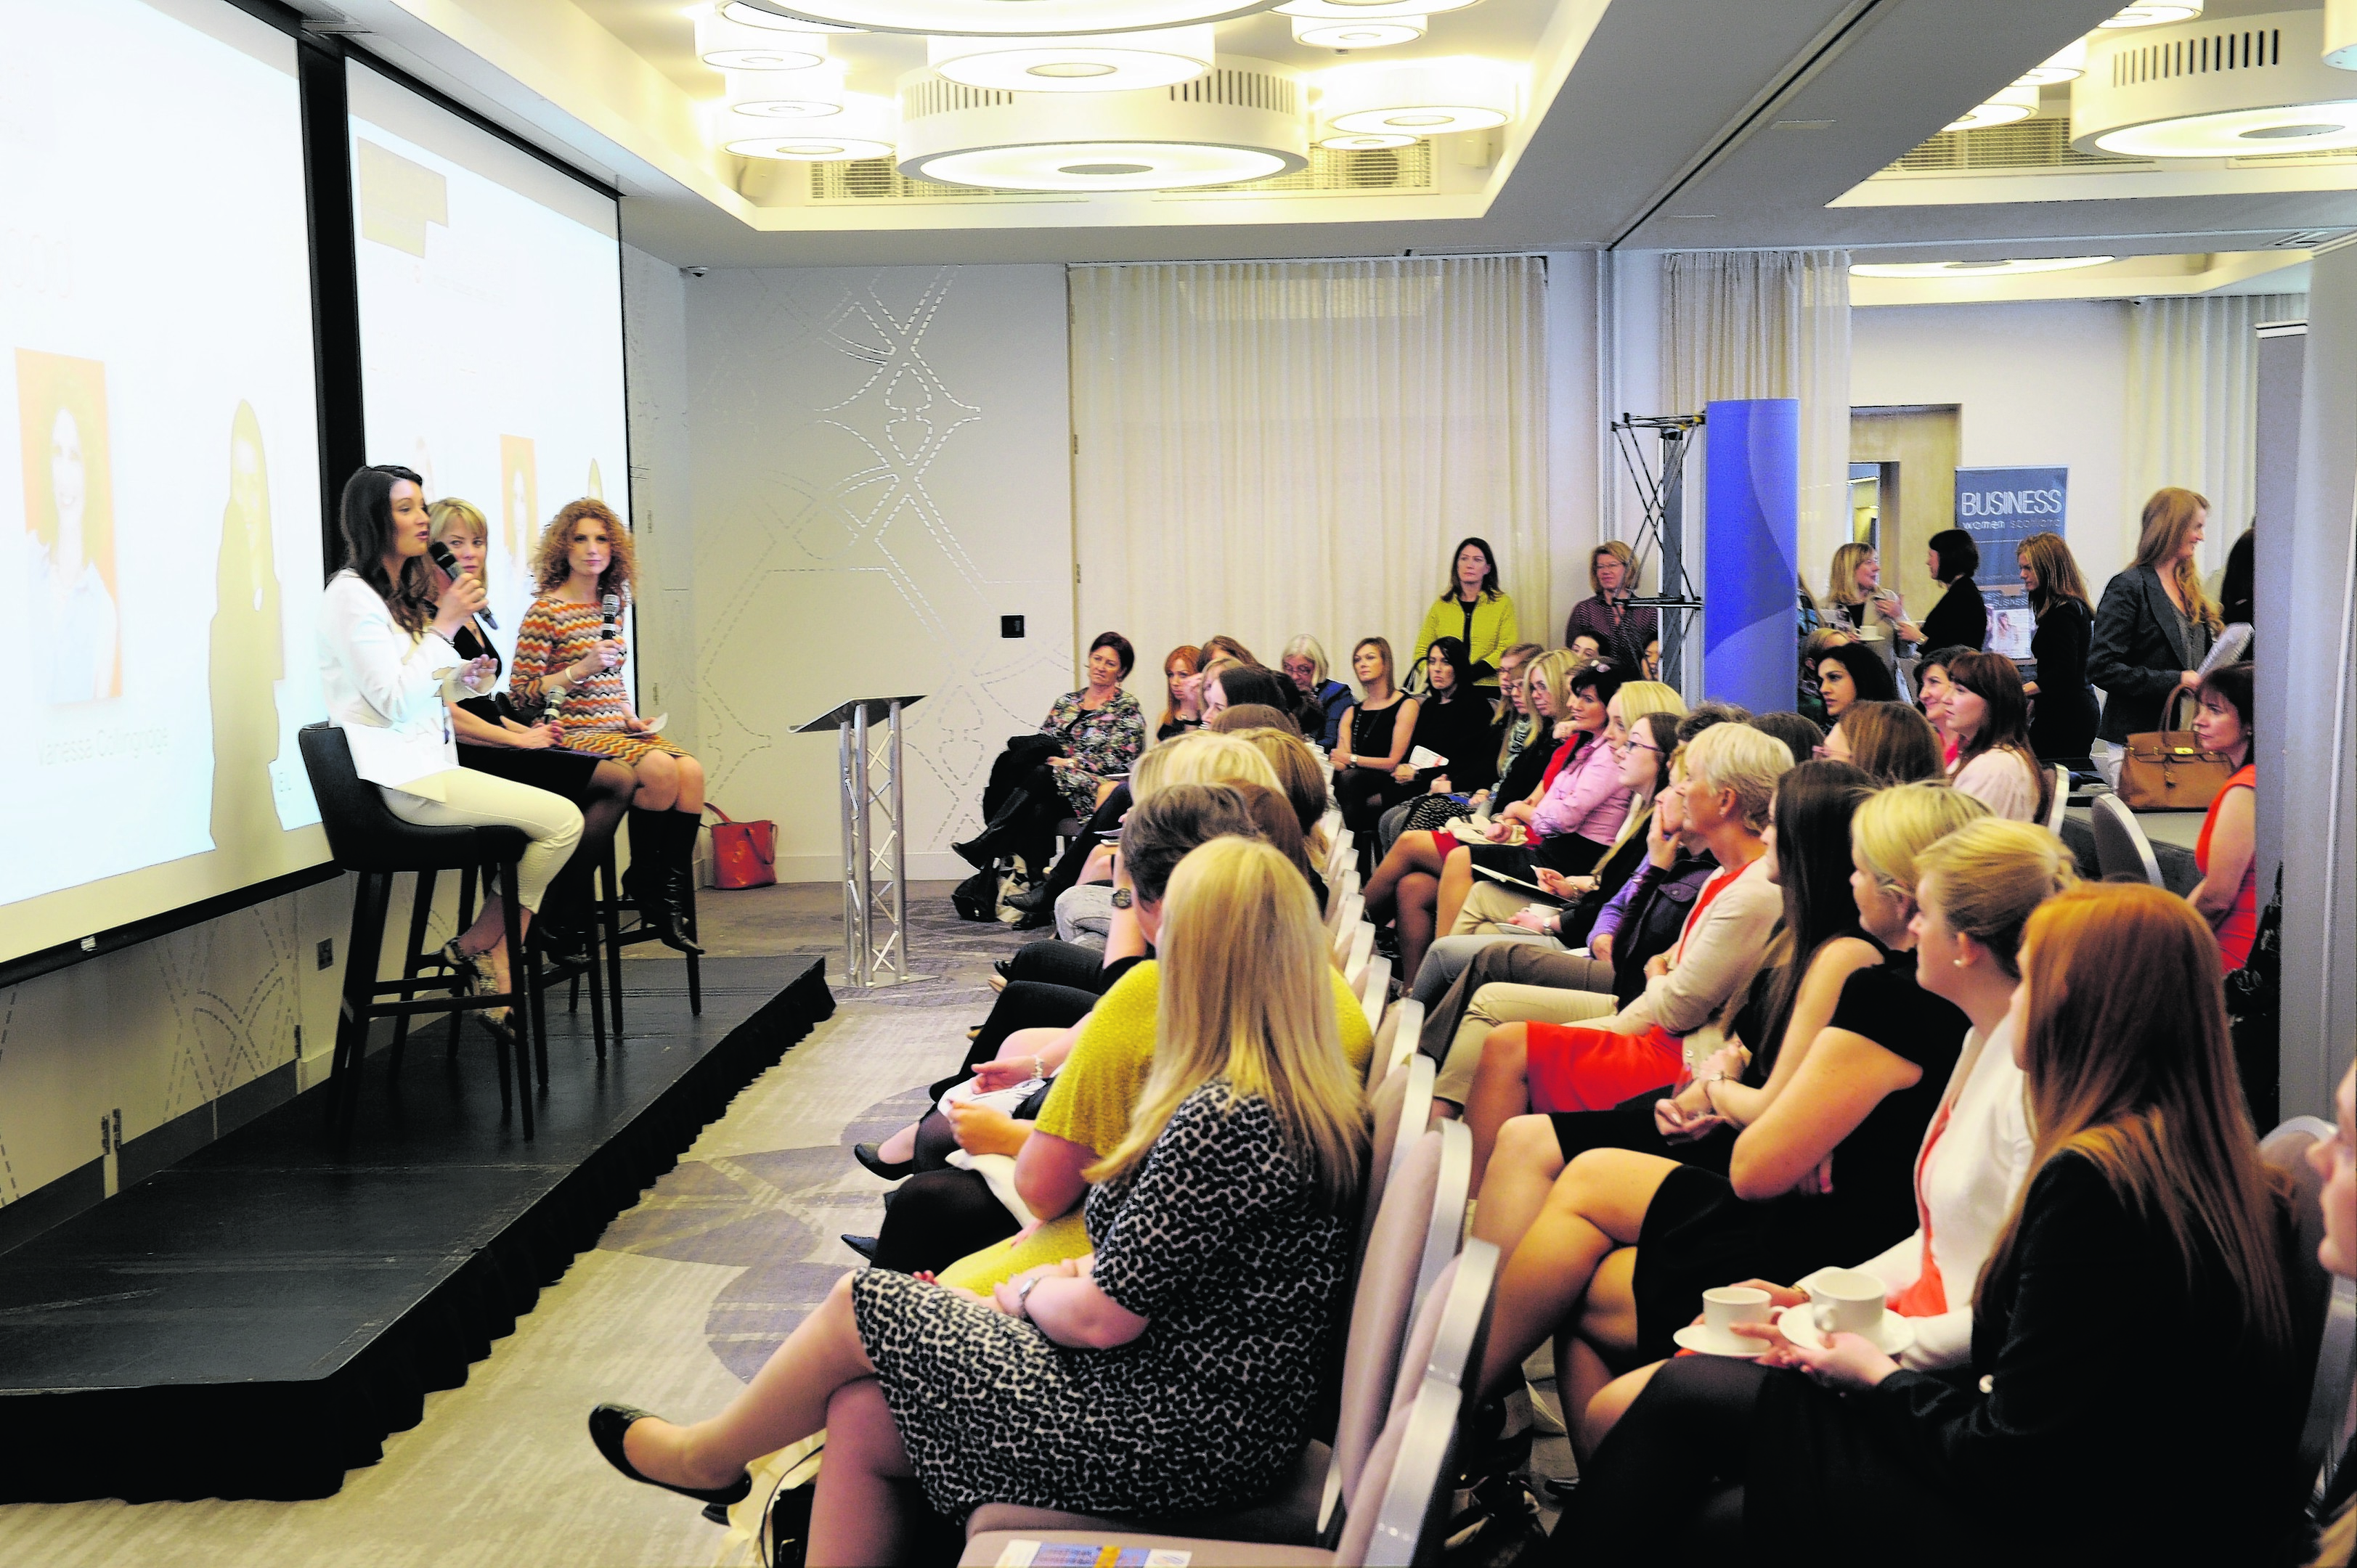 Business Women Scotland event. The Chester Hotel, Aberdeen. (from left) Laura McNeil, Dr Sam Robson and Vanessa Collingridge with the audience. Picture by COLIN RENNIE